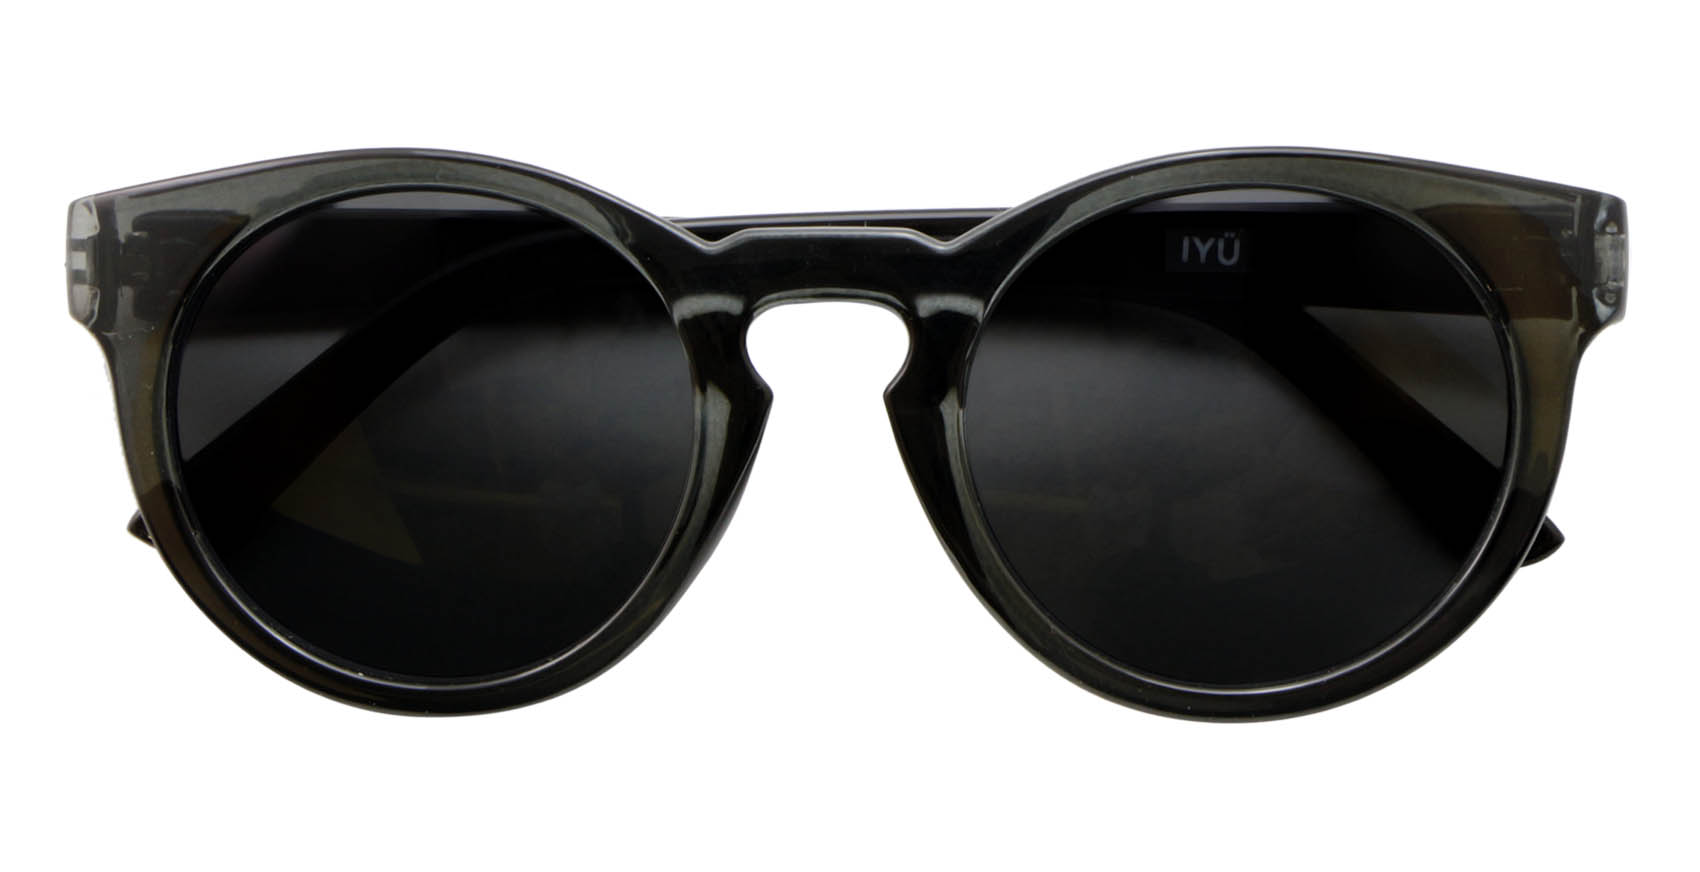 Iyu Design Transparent Anthracite Sunglasses Black Lenses